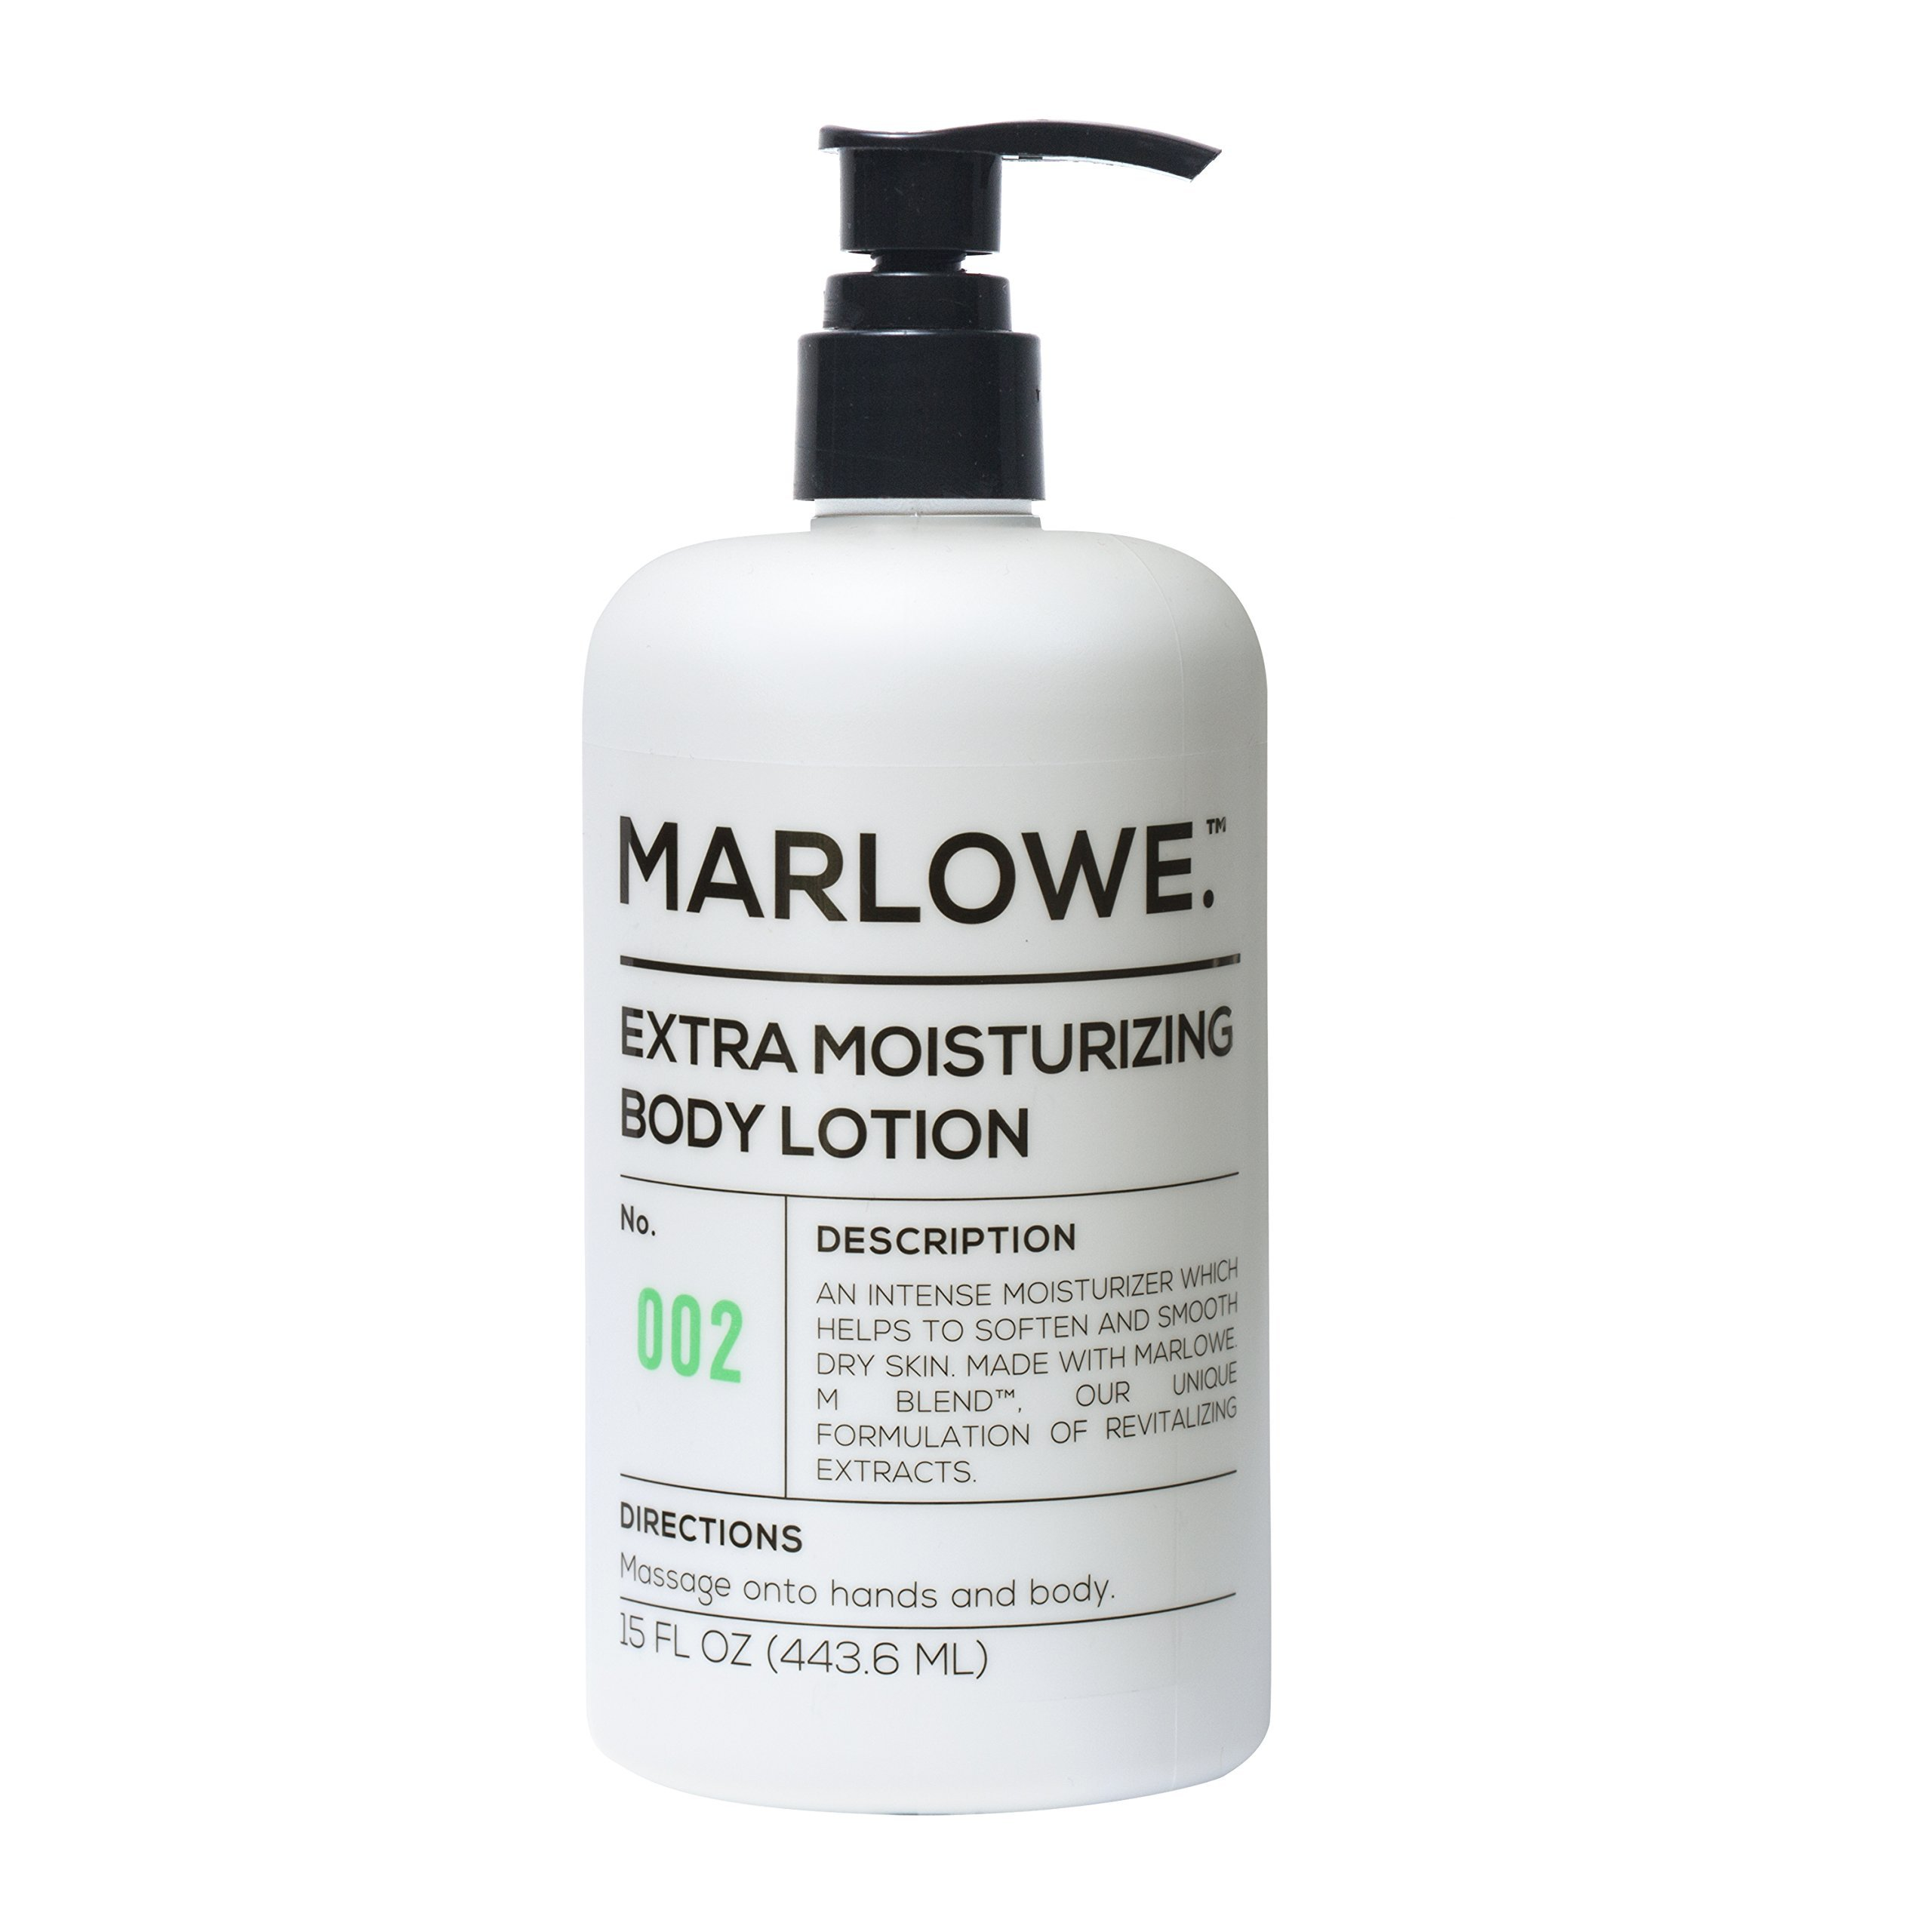 MARLOWE. 002 Extra Moisturizing Body Lotion 15 oz | Daily Lotion for Dry Skin for Men and Women | Light Fresh Scent | Made with Natural Ingredients | Vegan & Cruelty-Free by Marlowe (Image #1)